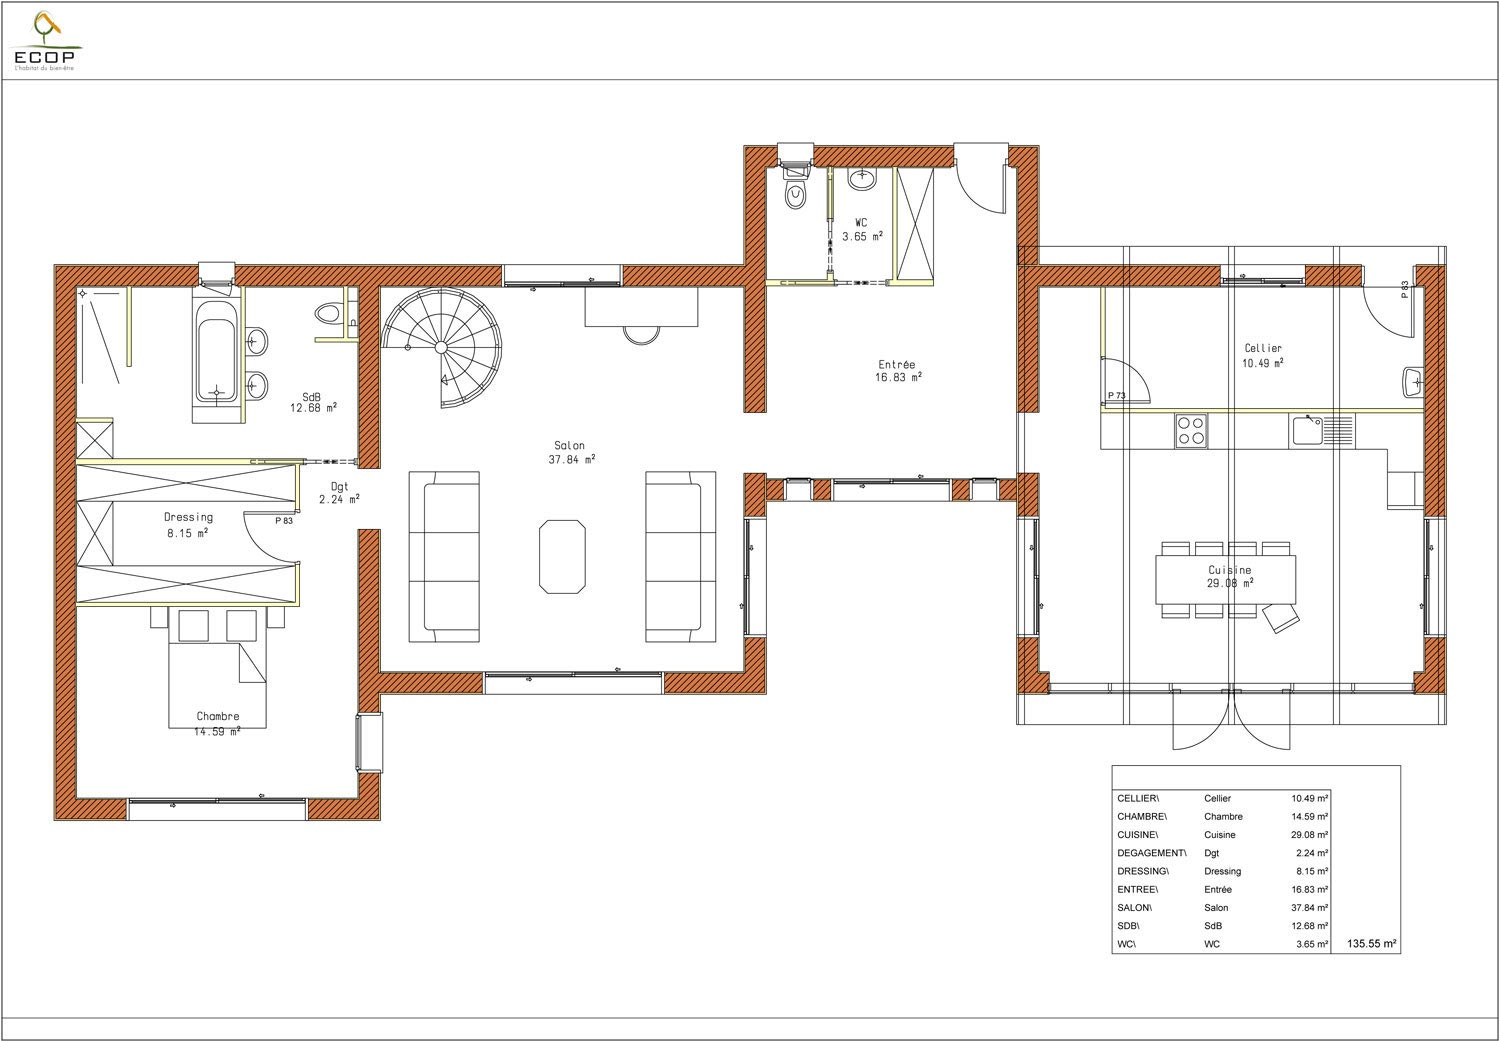 Stunning plan de maison de luxe plain pied gallery for Plain pied plan